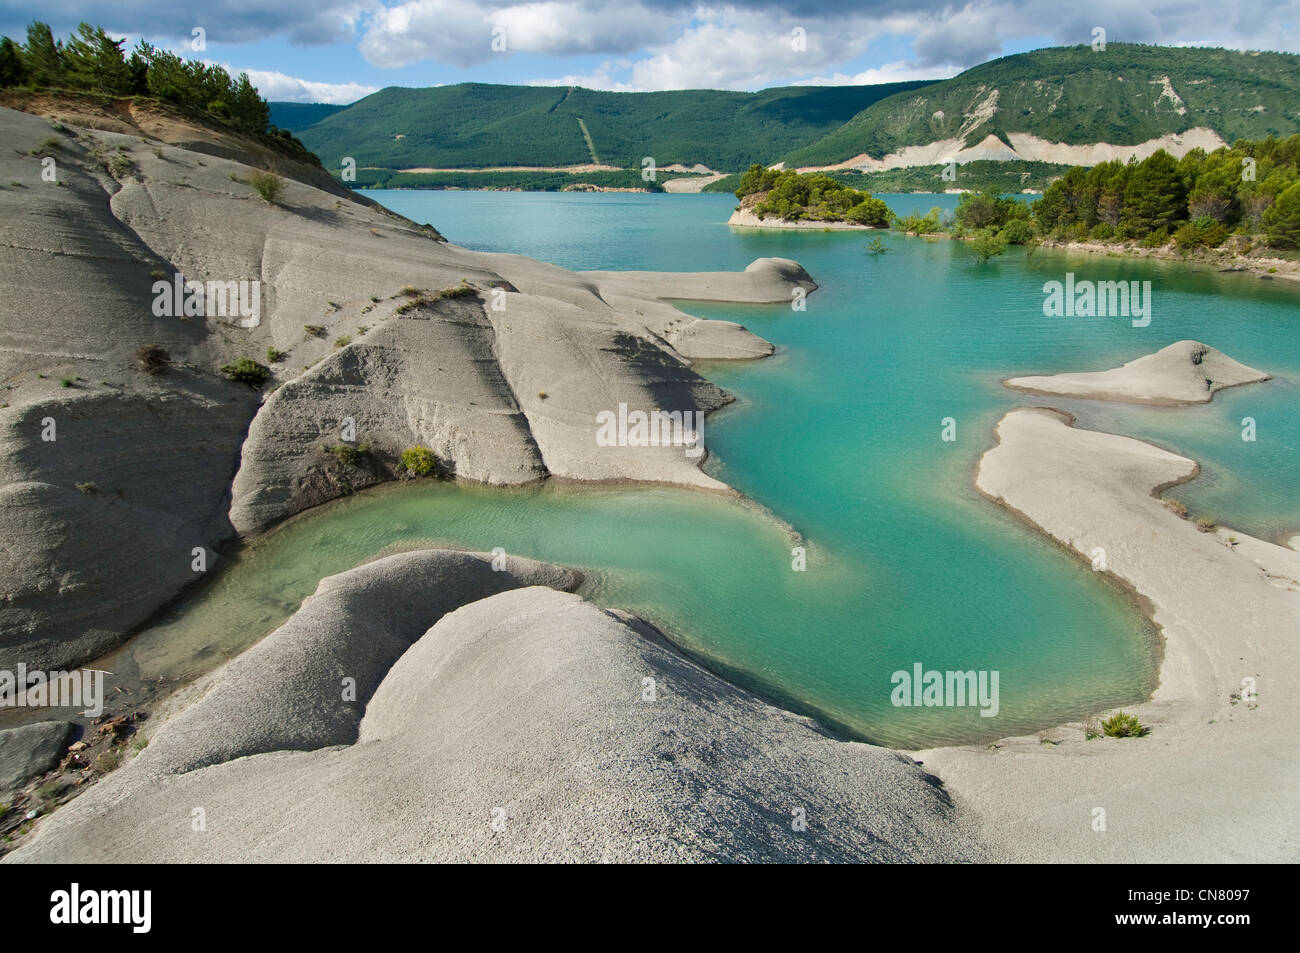 Spain, Aragon, Yesa, shores ans islands of dam lake of Yesa - Stock Image